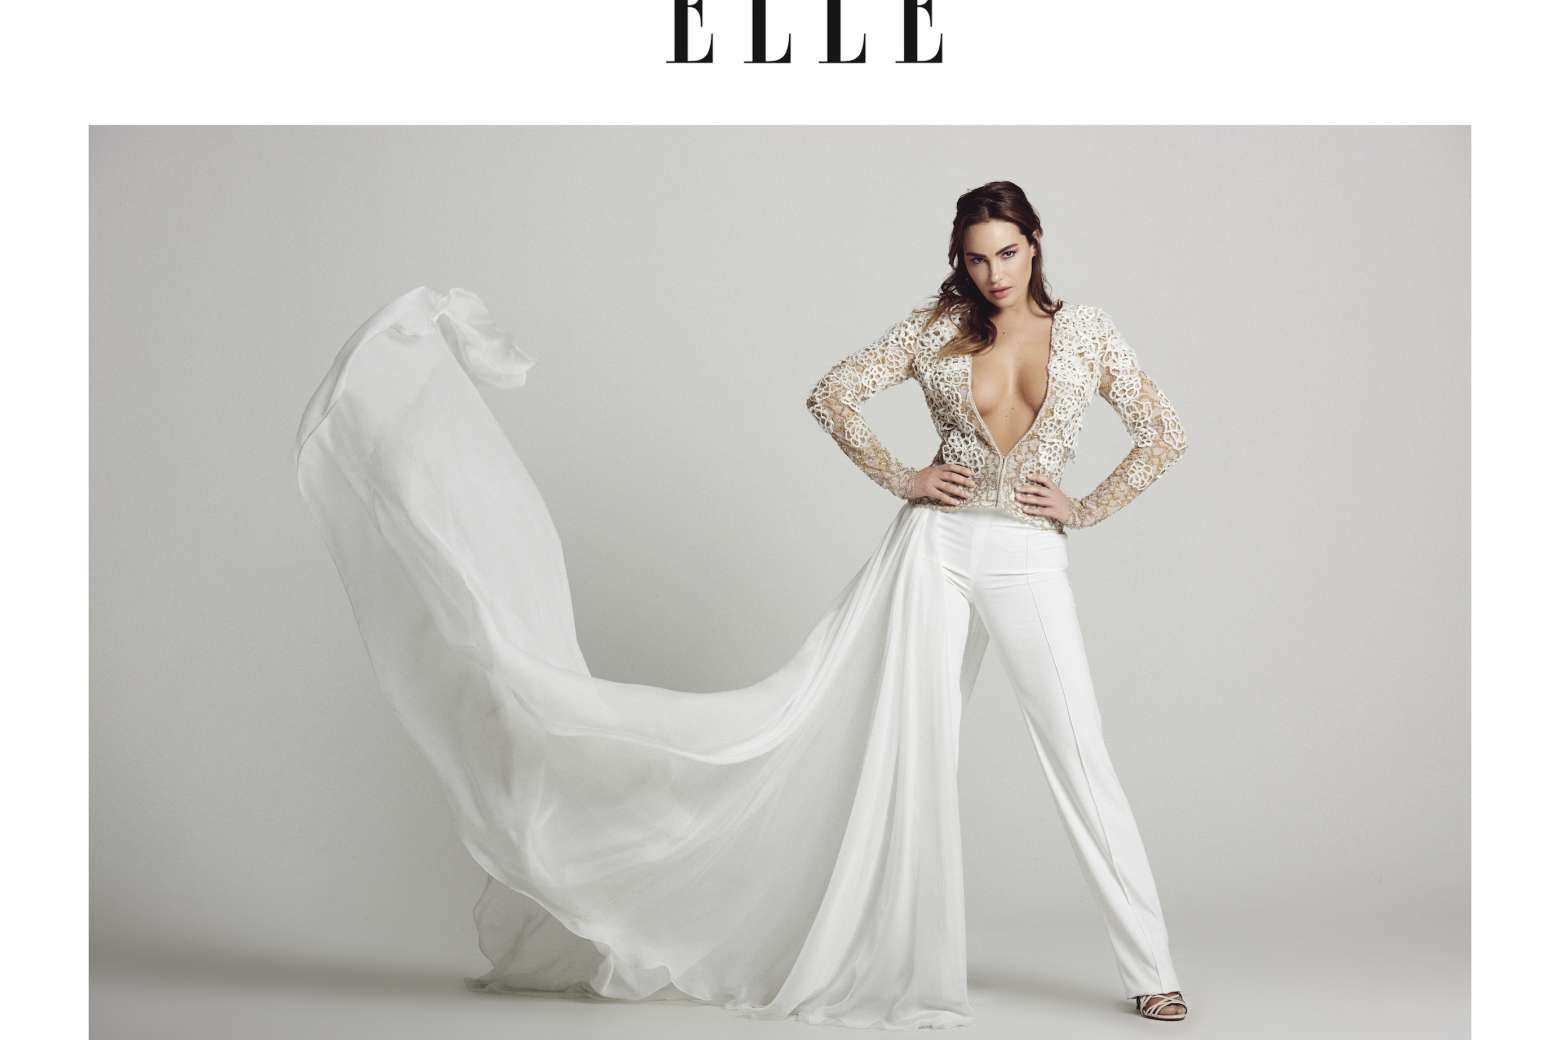 ELLE BG, April 2020